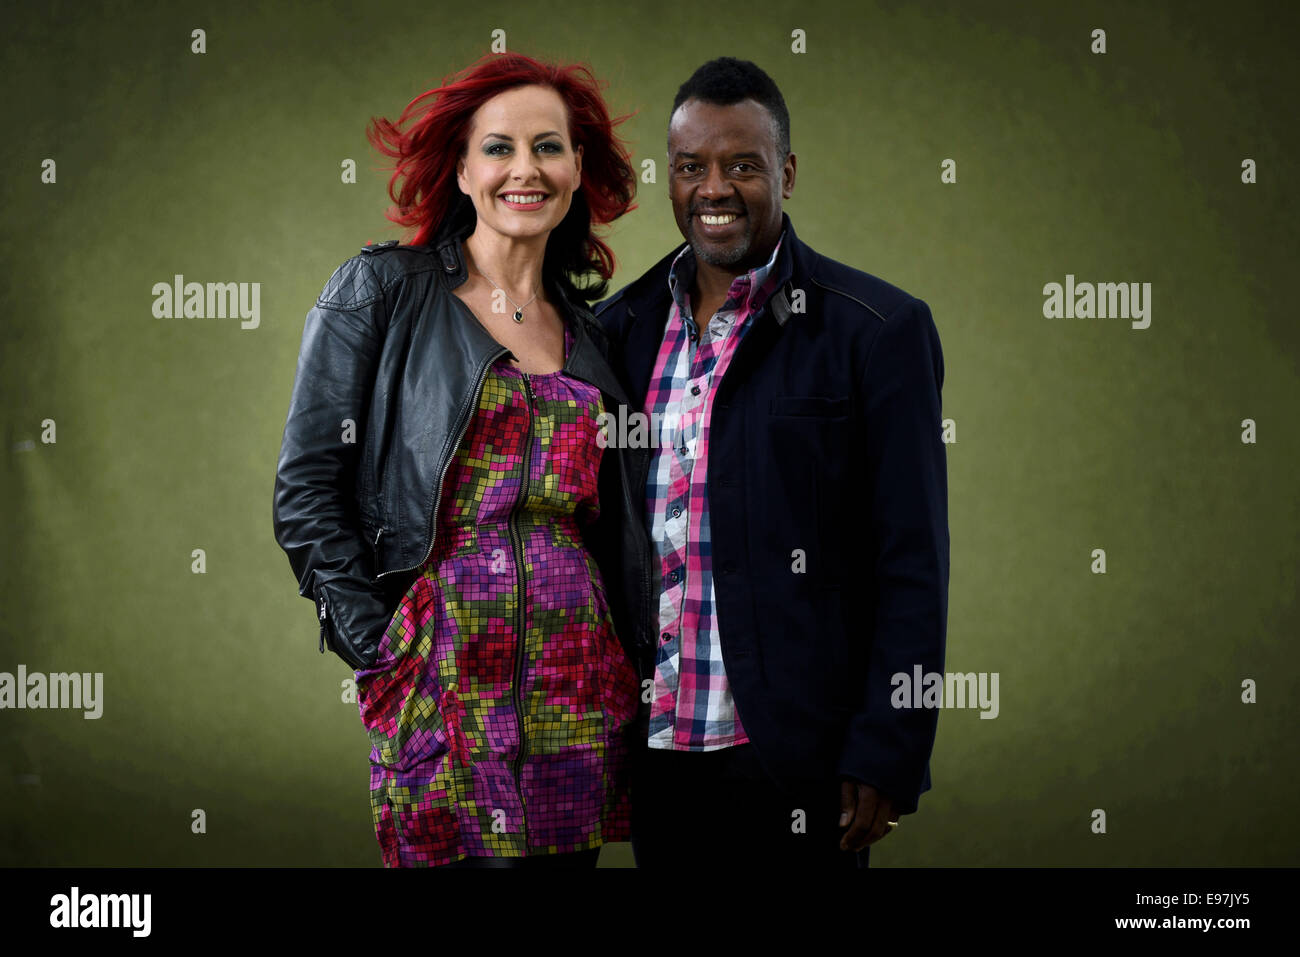 Vocal Coaches, judges and TV presenters David and Carrie Grant appear at the Edinburgh International Book Festival. - Stock Image